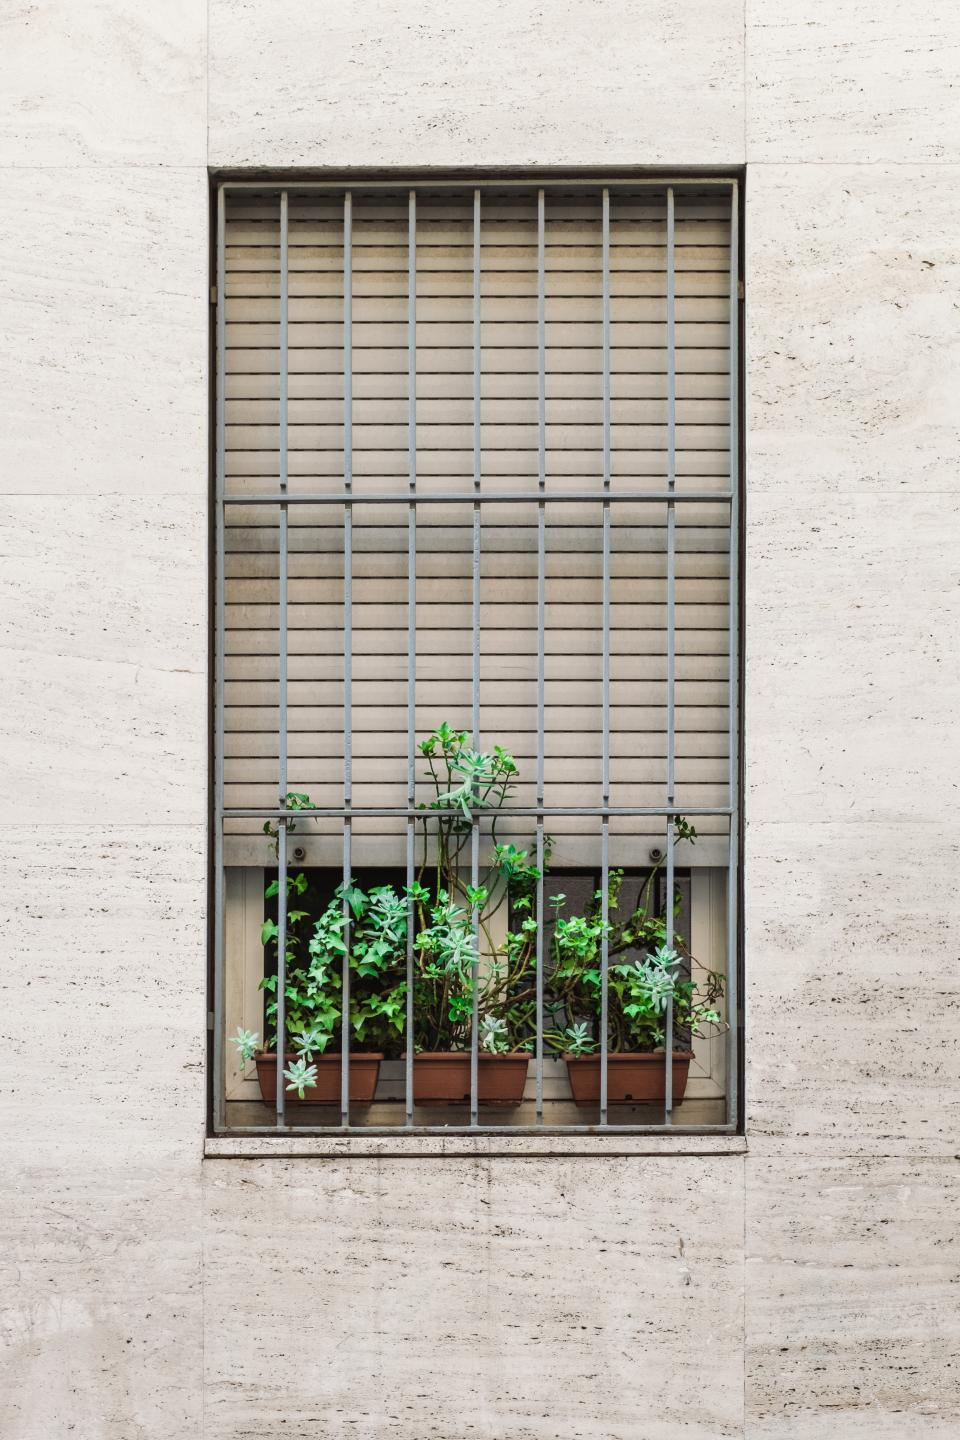 symmetry aesthetics windows grills plants garden pot green wall